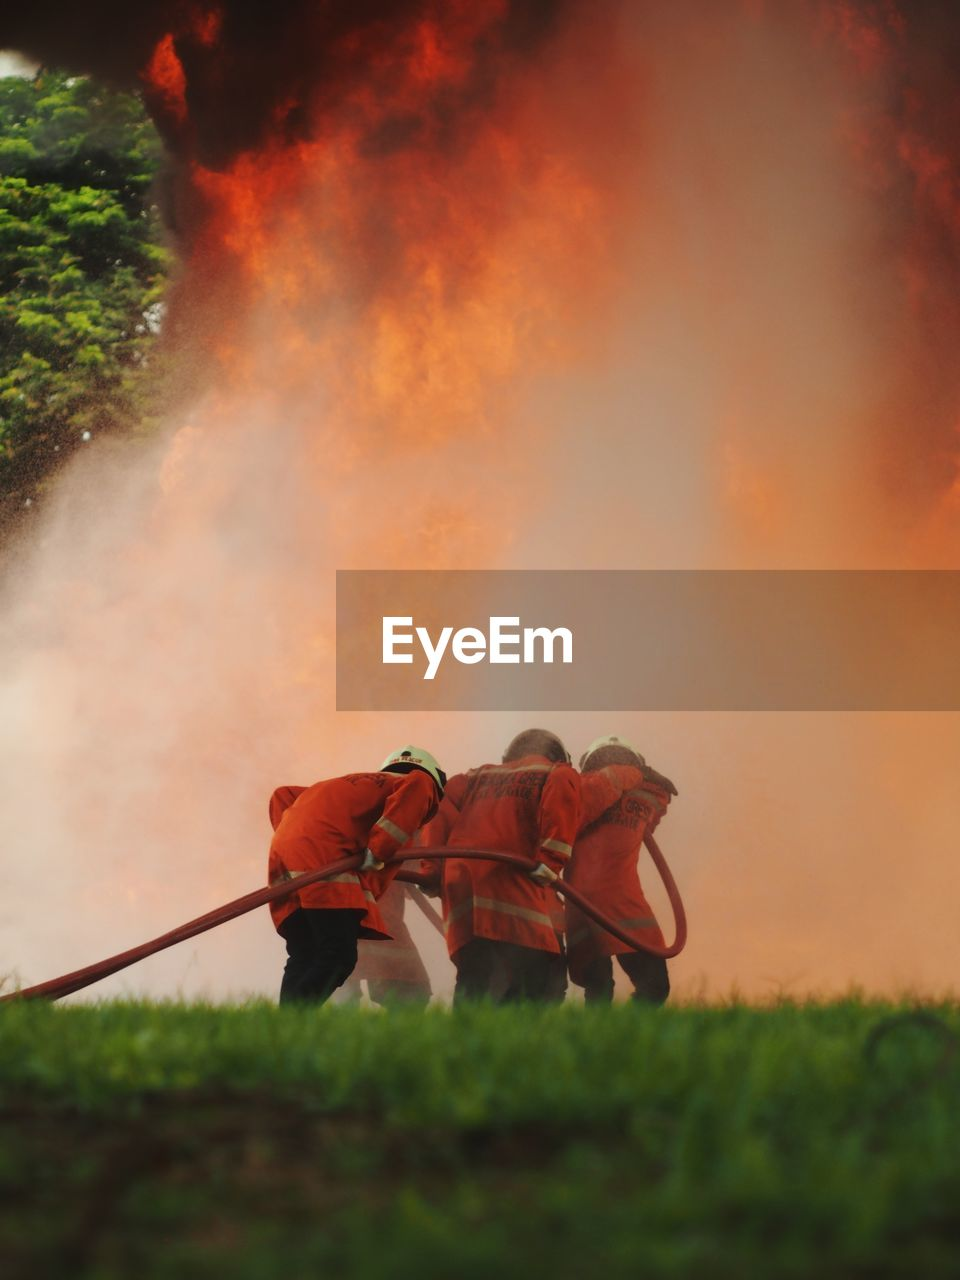 real people, men, nature, rear view, group of people, plant, occupation, people, smoke - physical structure, orange color, land, outdoors, fire, firefighter, sky, grass, field, burning, fire - natural phenomenon, uniform